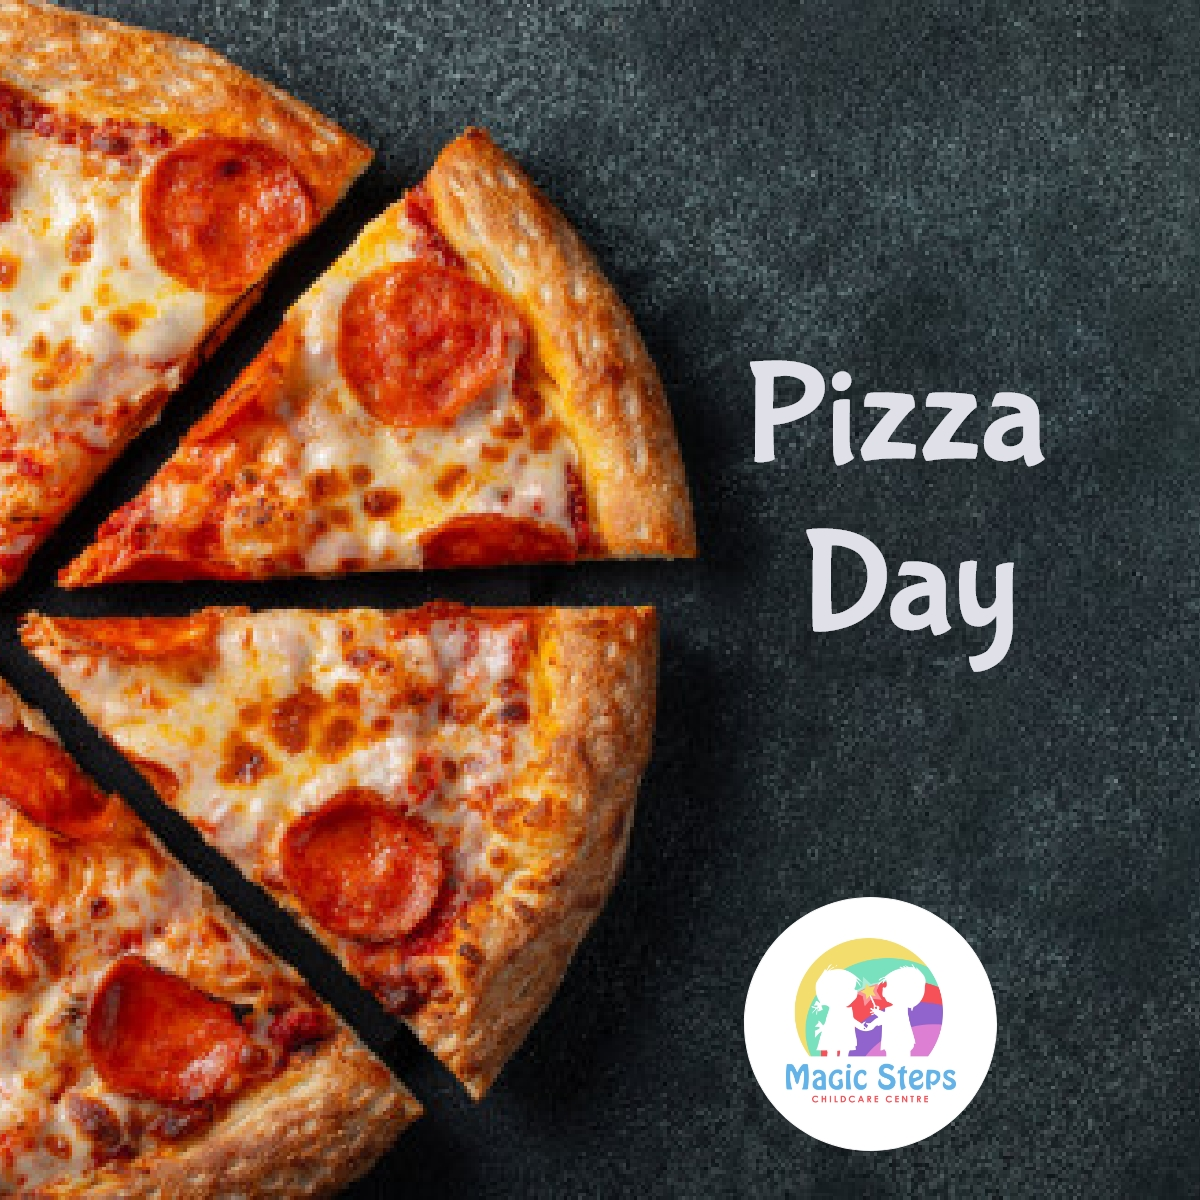 Happy Pizza Day Making- Tuesday 23rd February